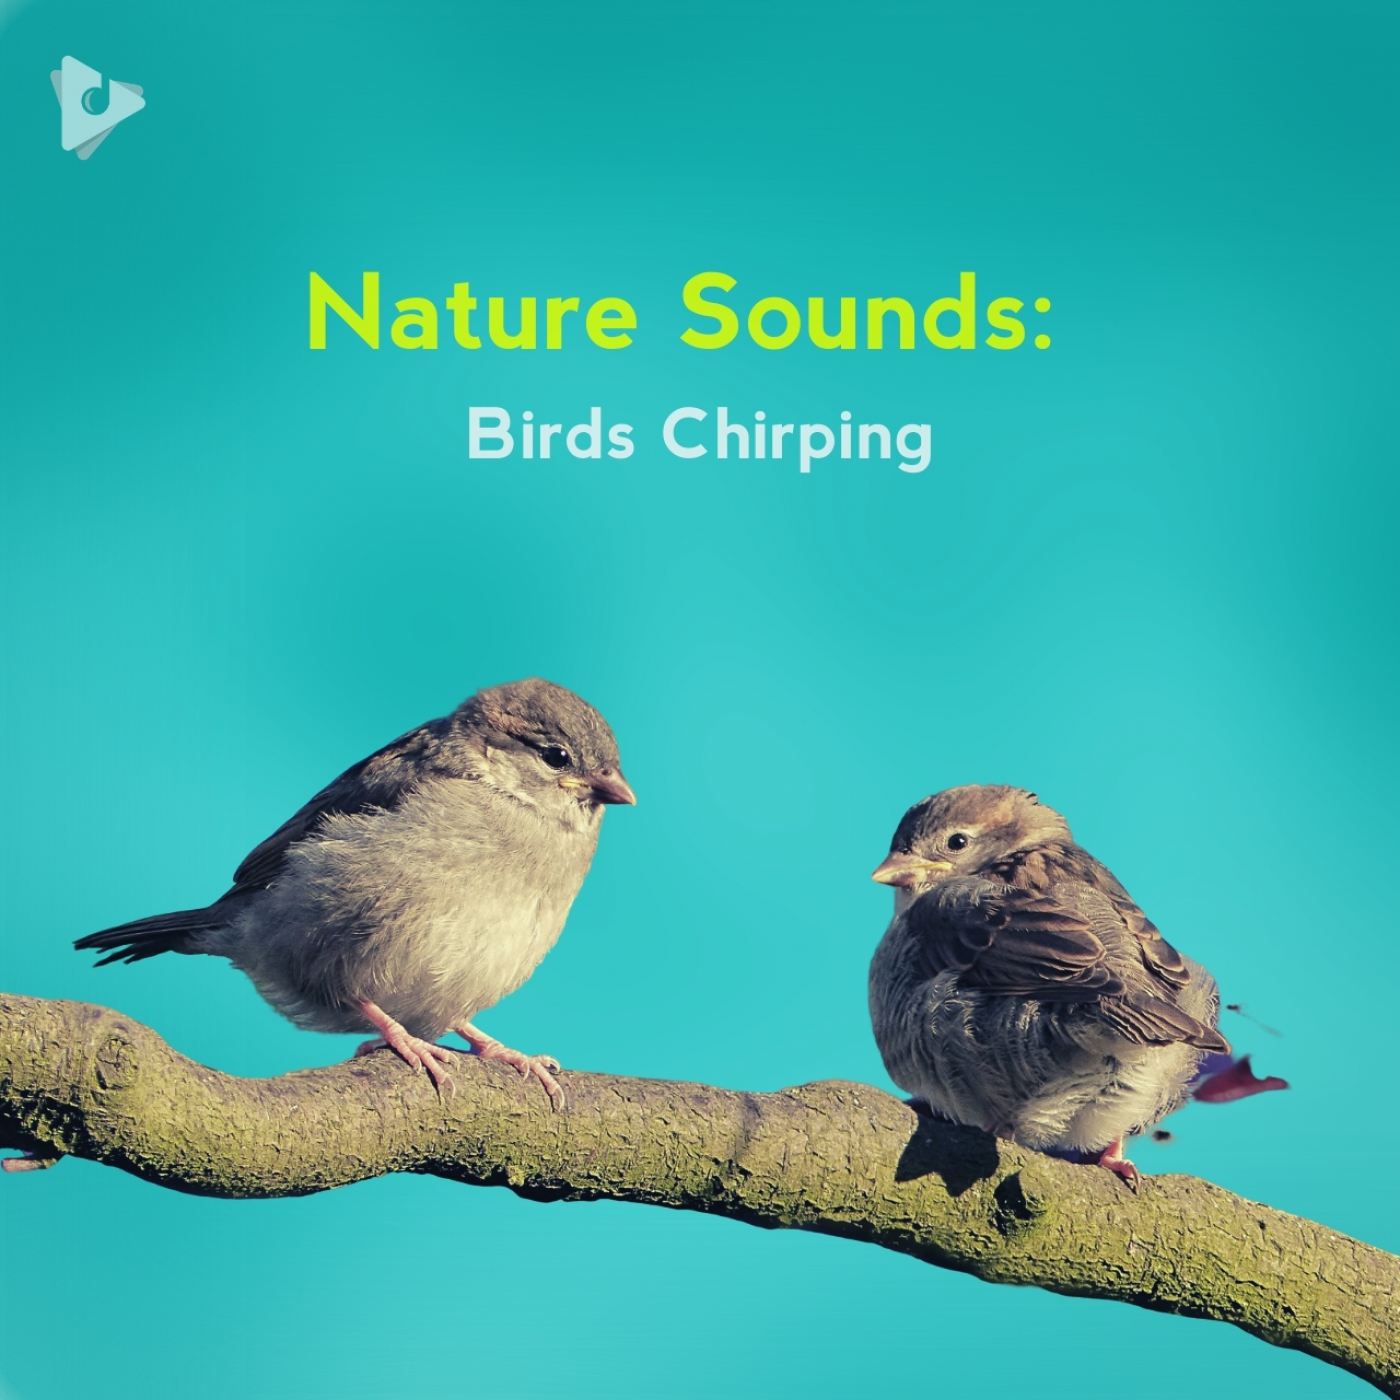 Nature Sounds: Birds Chirping